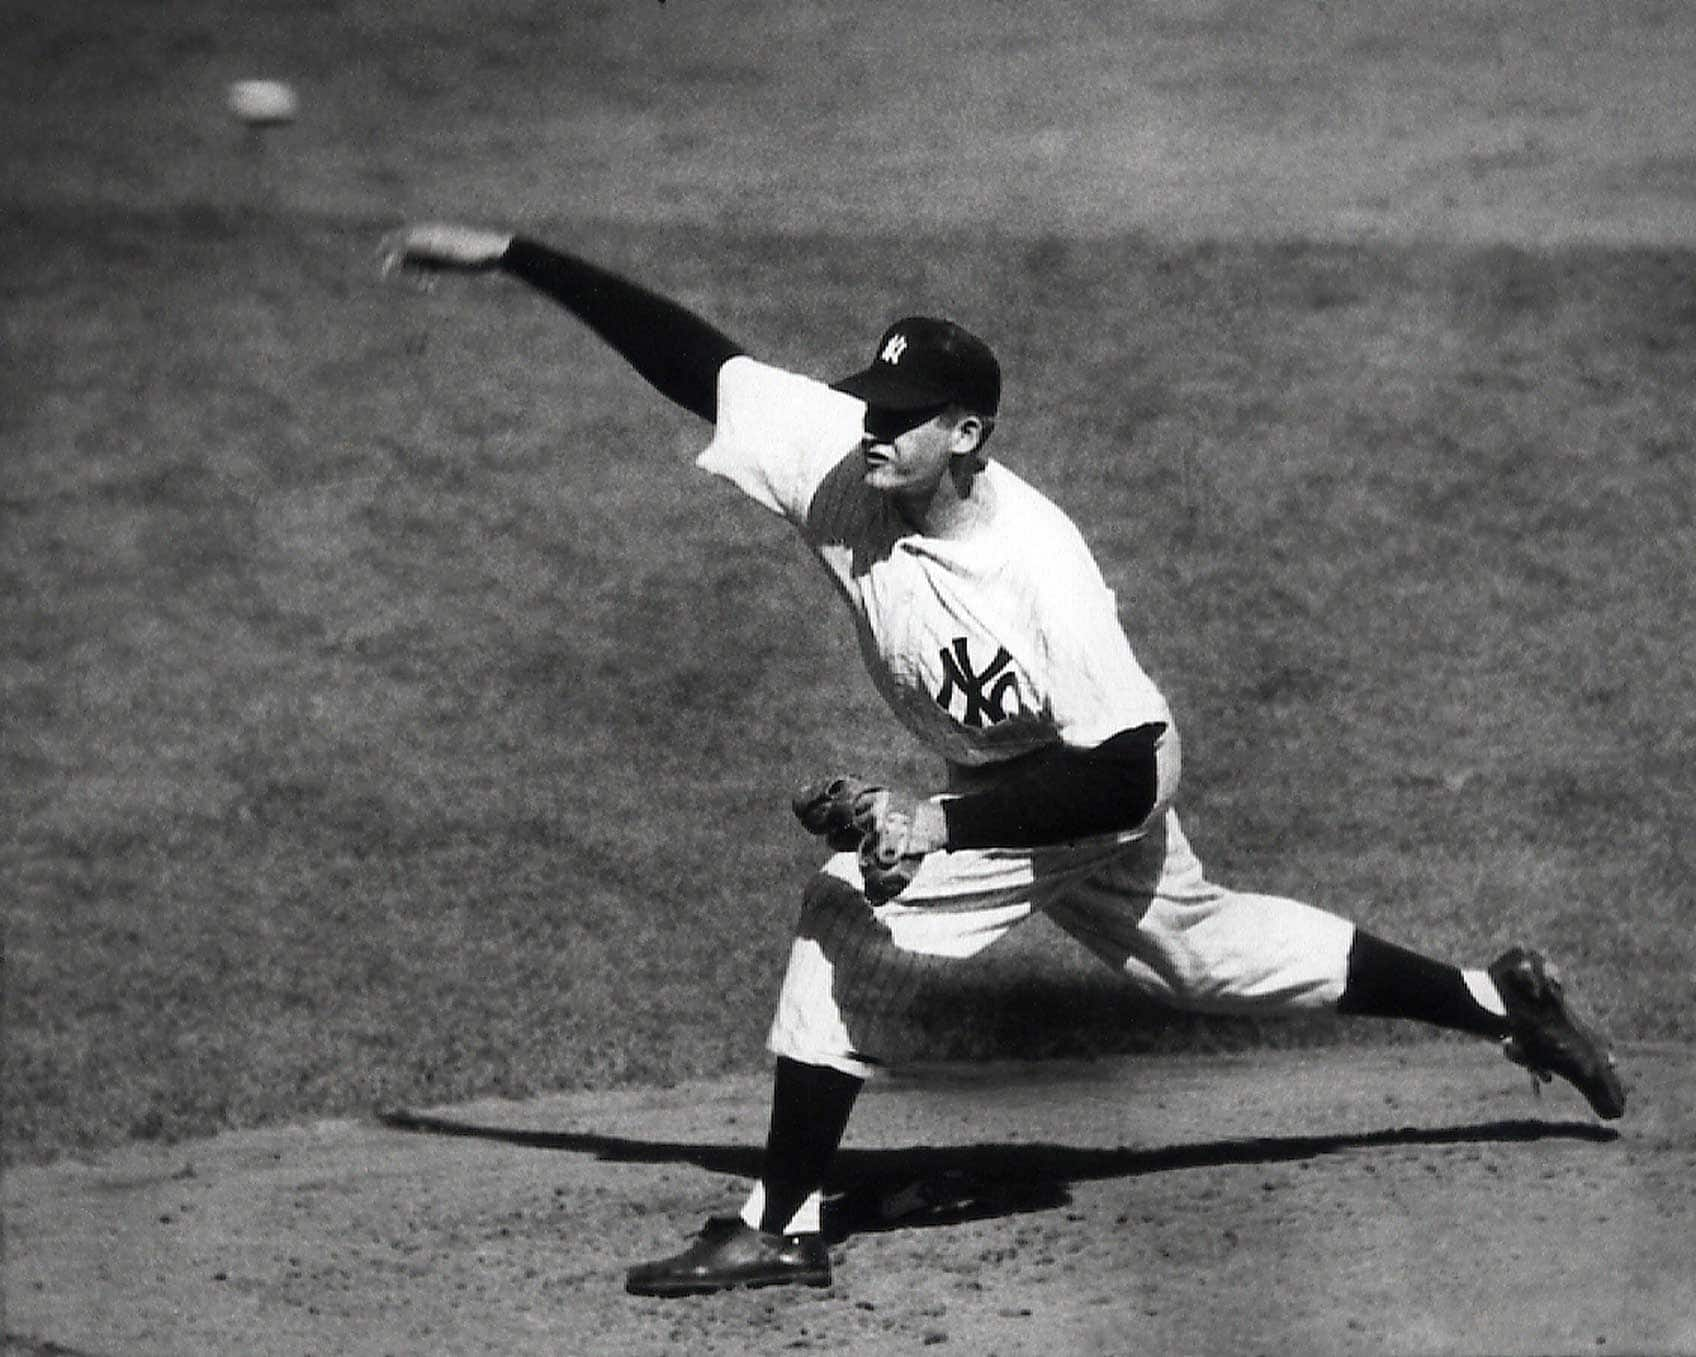 New York Yankees right-handed pitcher Don Larsen delivers a pitch in the fourth inning of Game 5 of the World Series